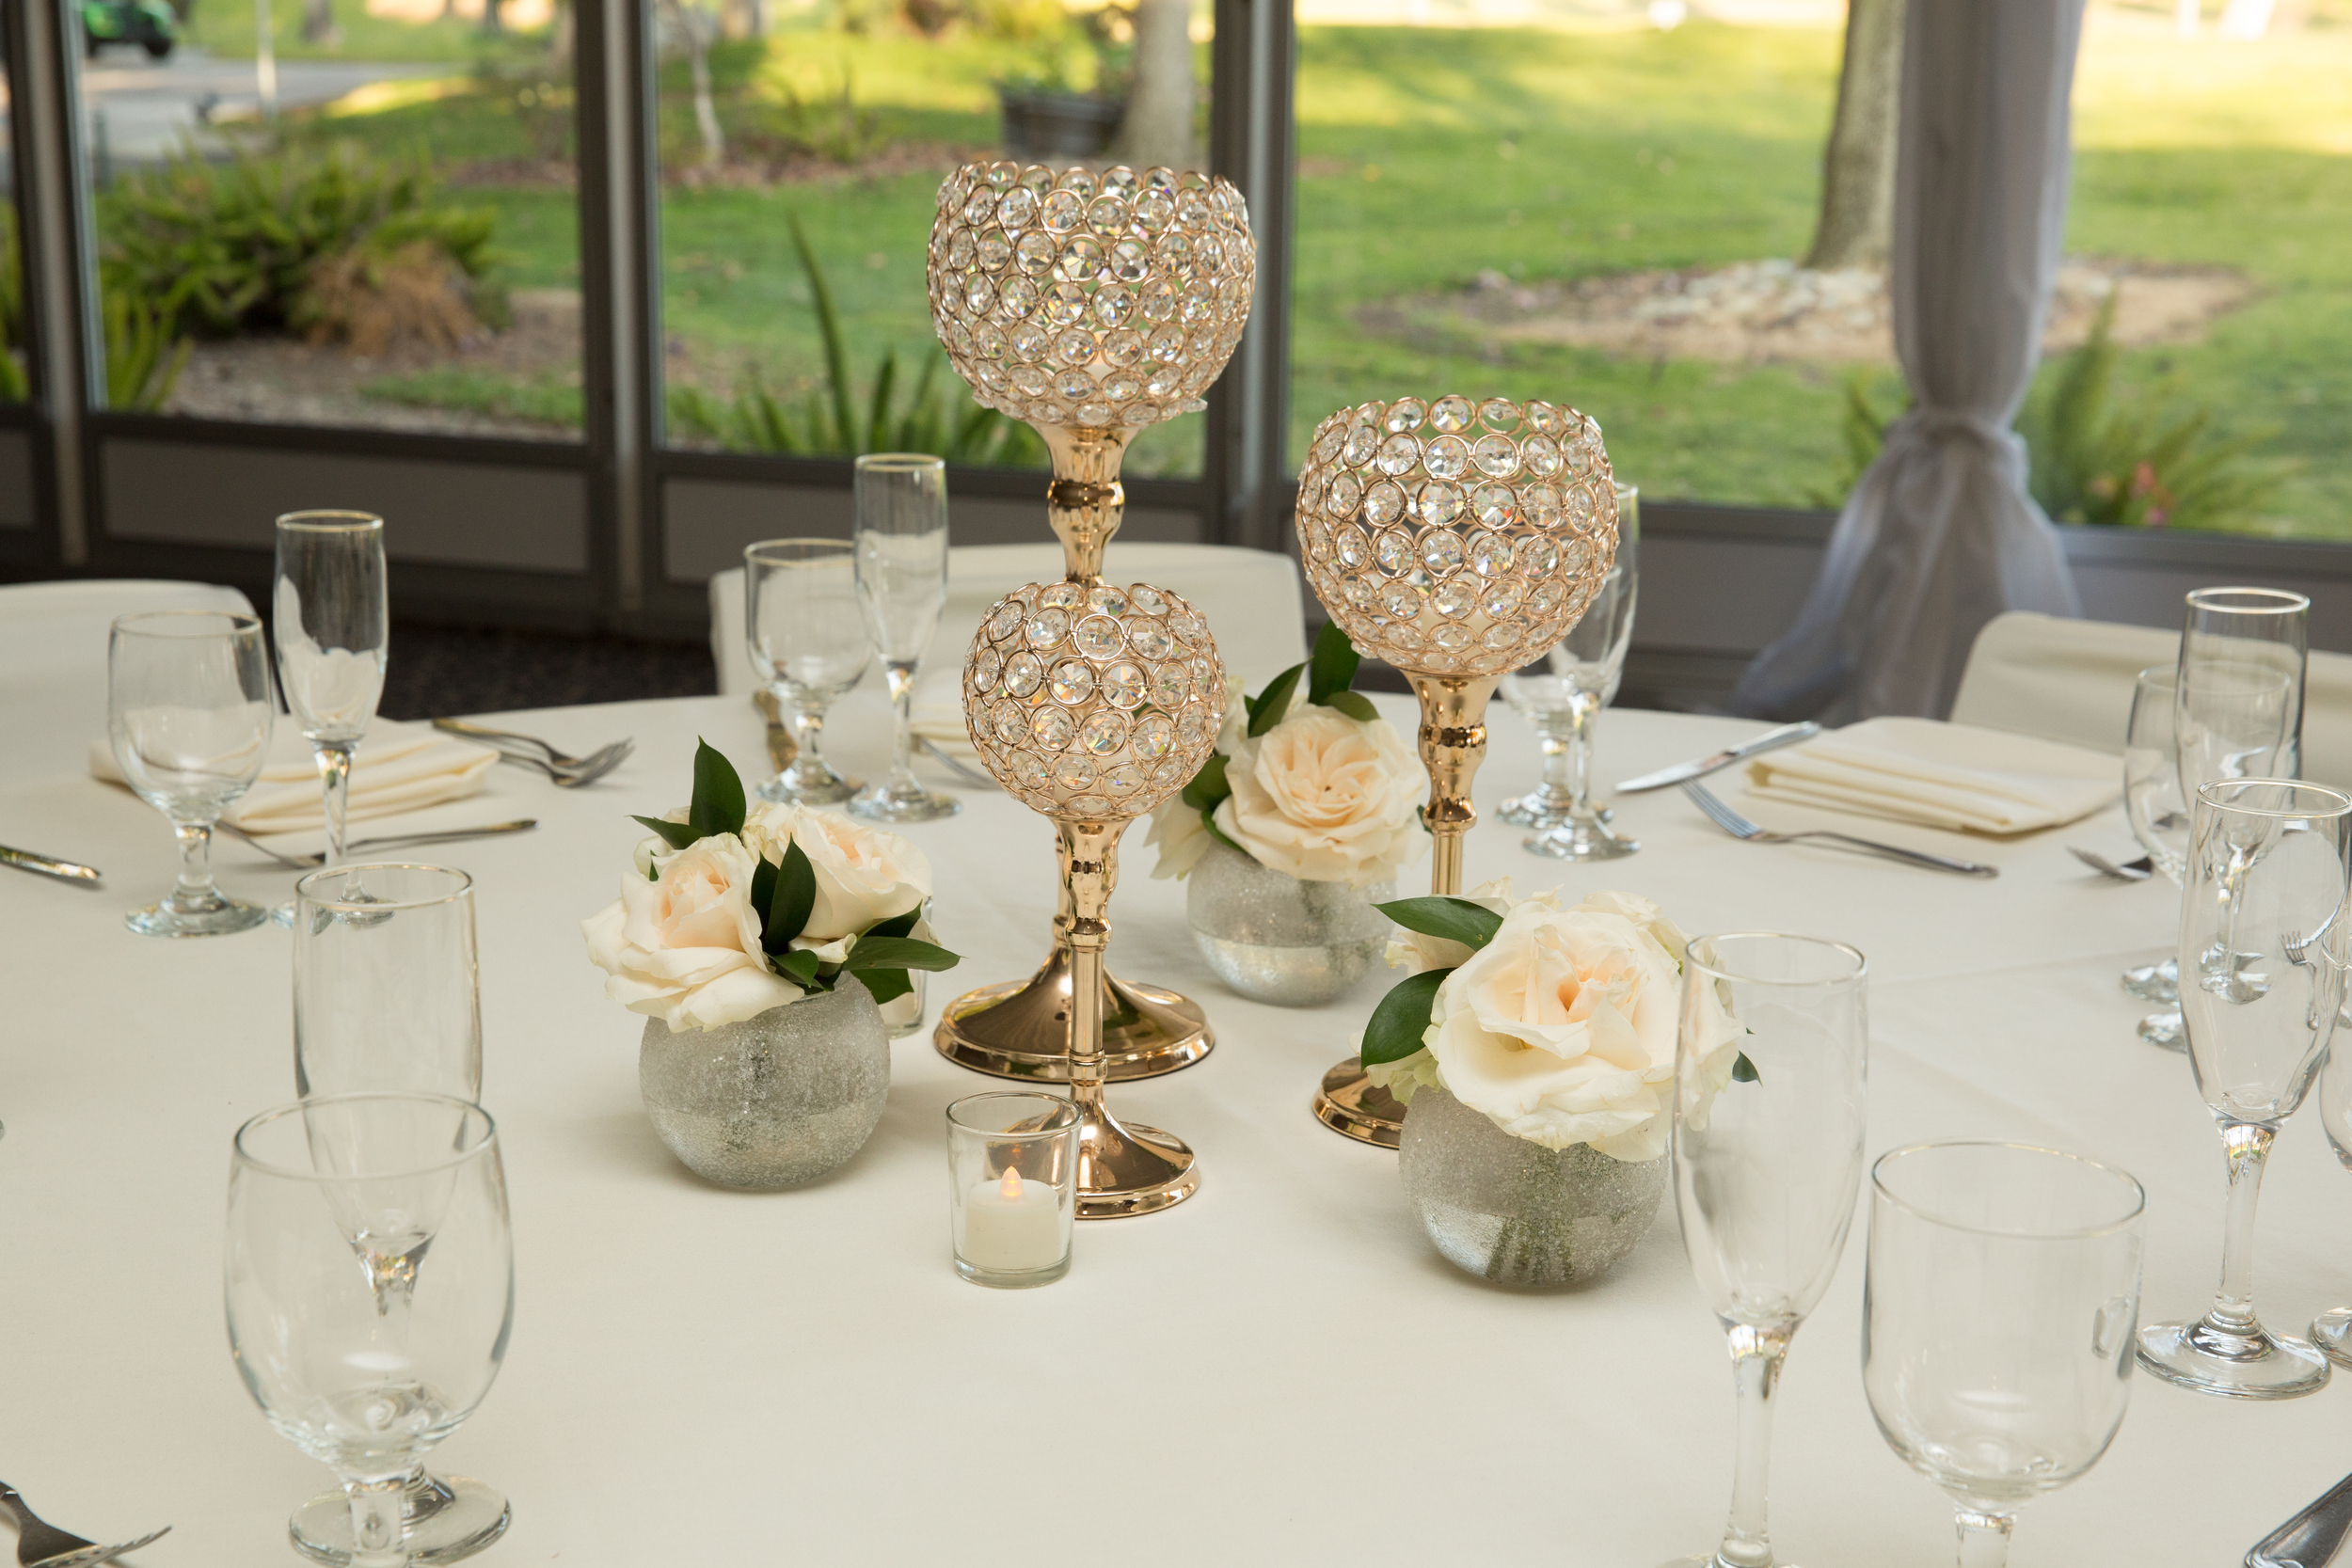 WC-1604 / jeweled candle set with flora